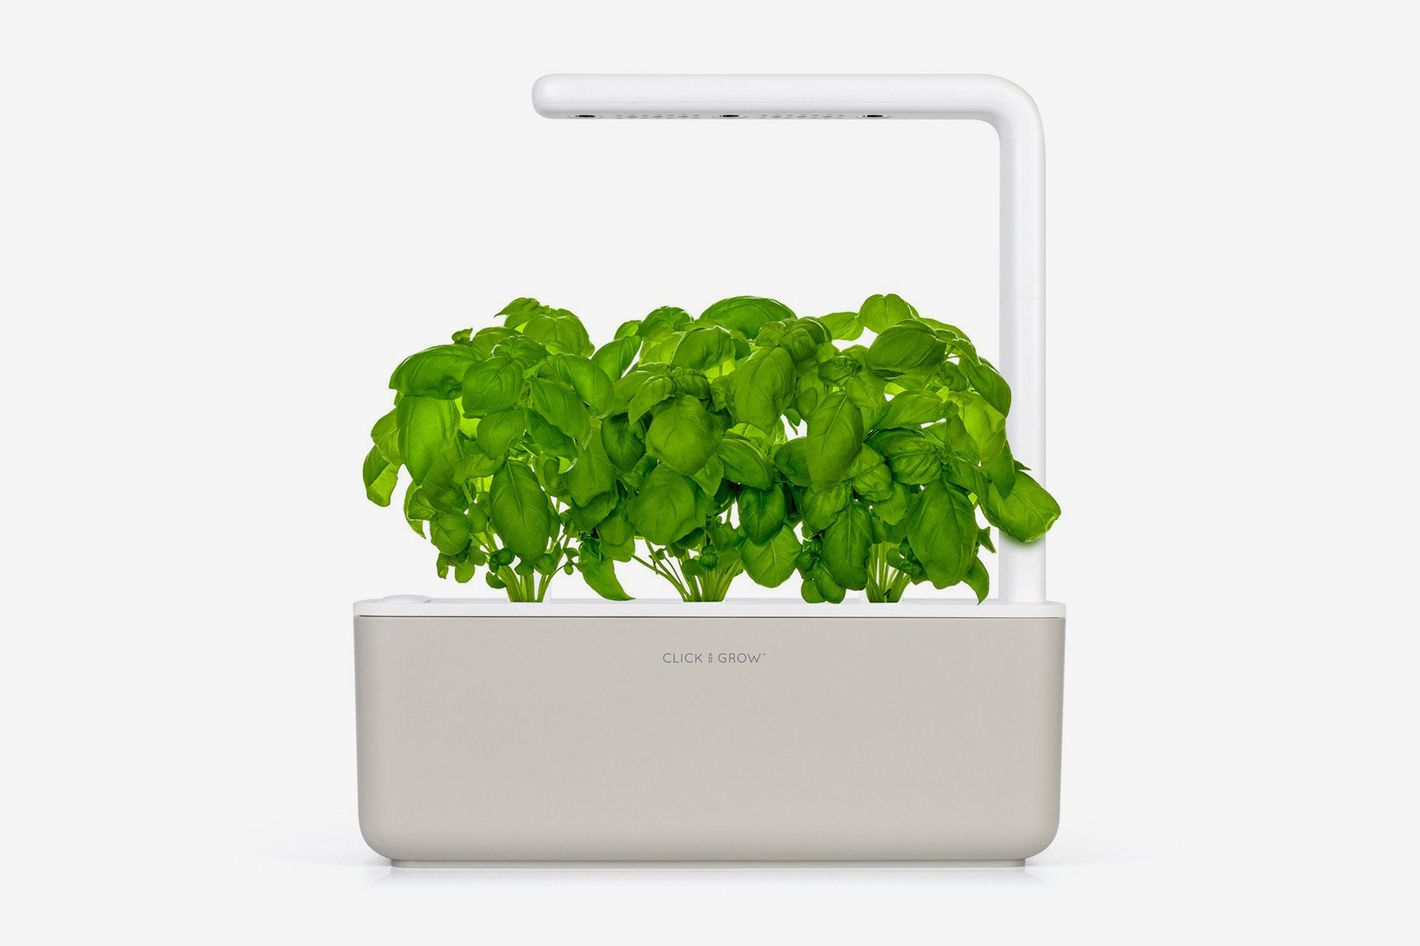 Best Garden Kits For Herbs The Smart 3